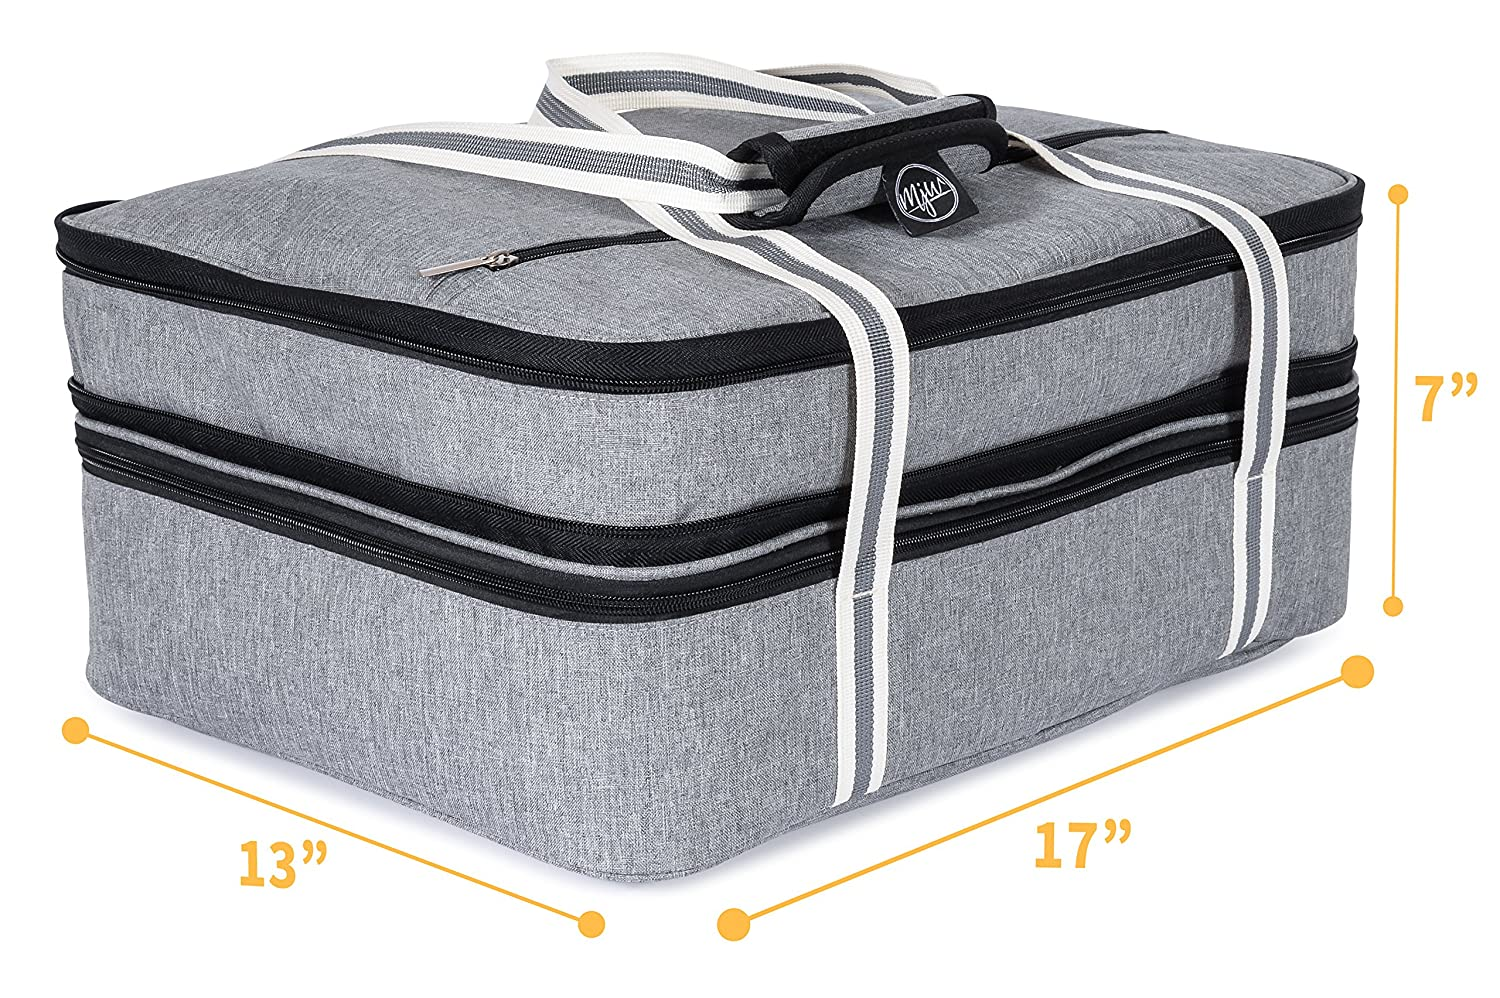 a4b4b3e356153f MJW Extra-large Double Layered Expandable Insulated Casserole Carrier and  Lasagna Holder, Hot and Cold Thermal Lunch Tote Bag for Potluck, Picnic, ...